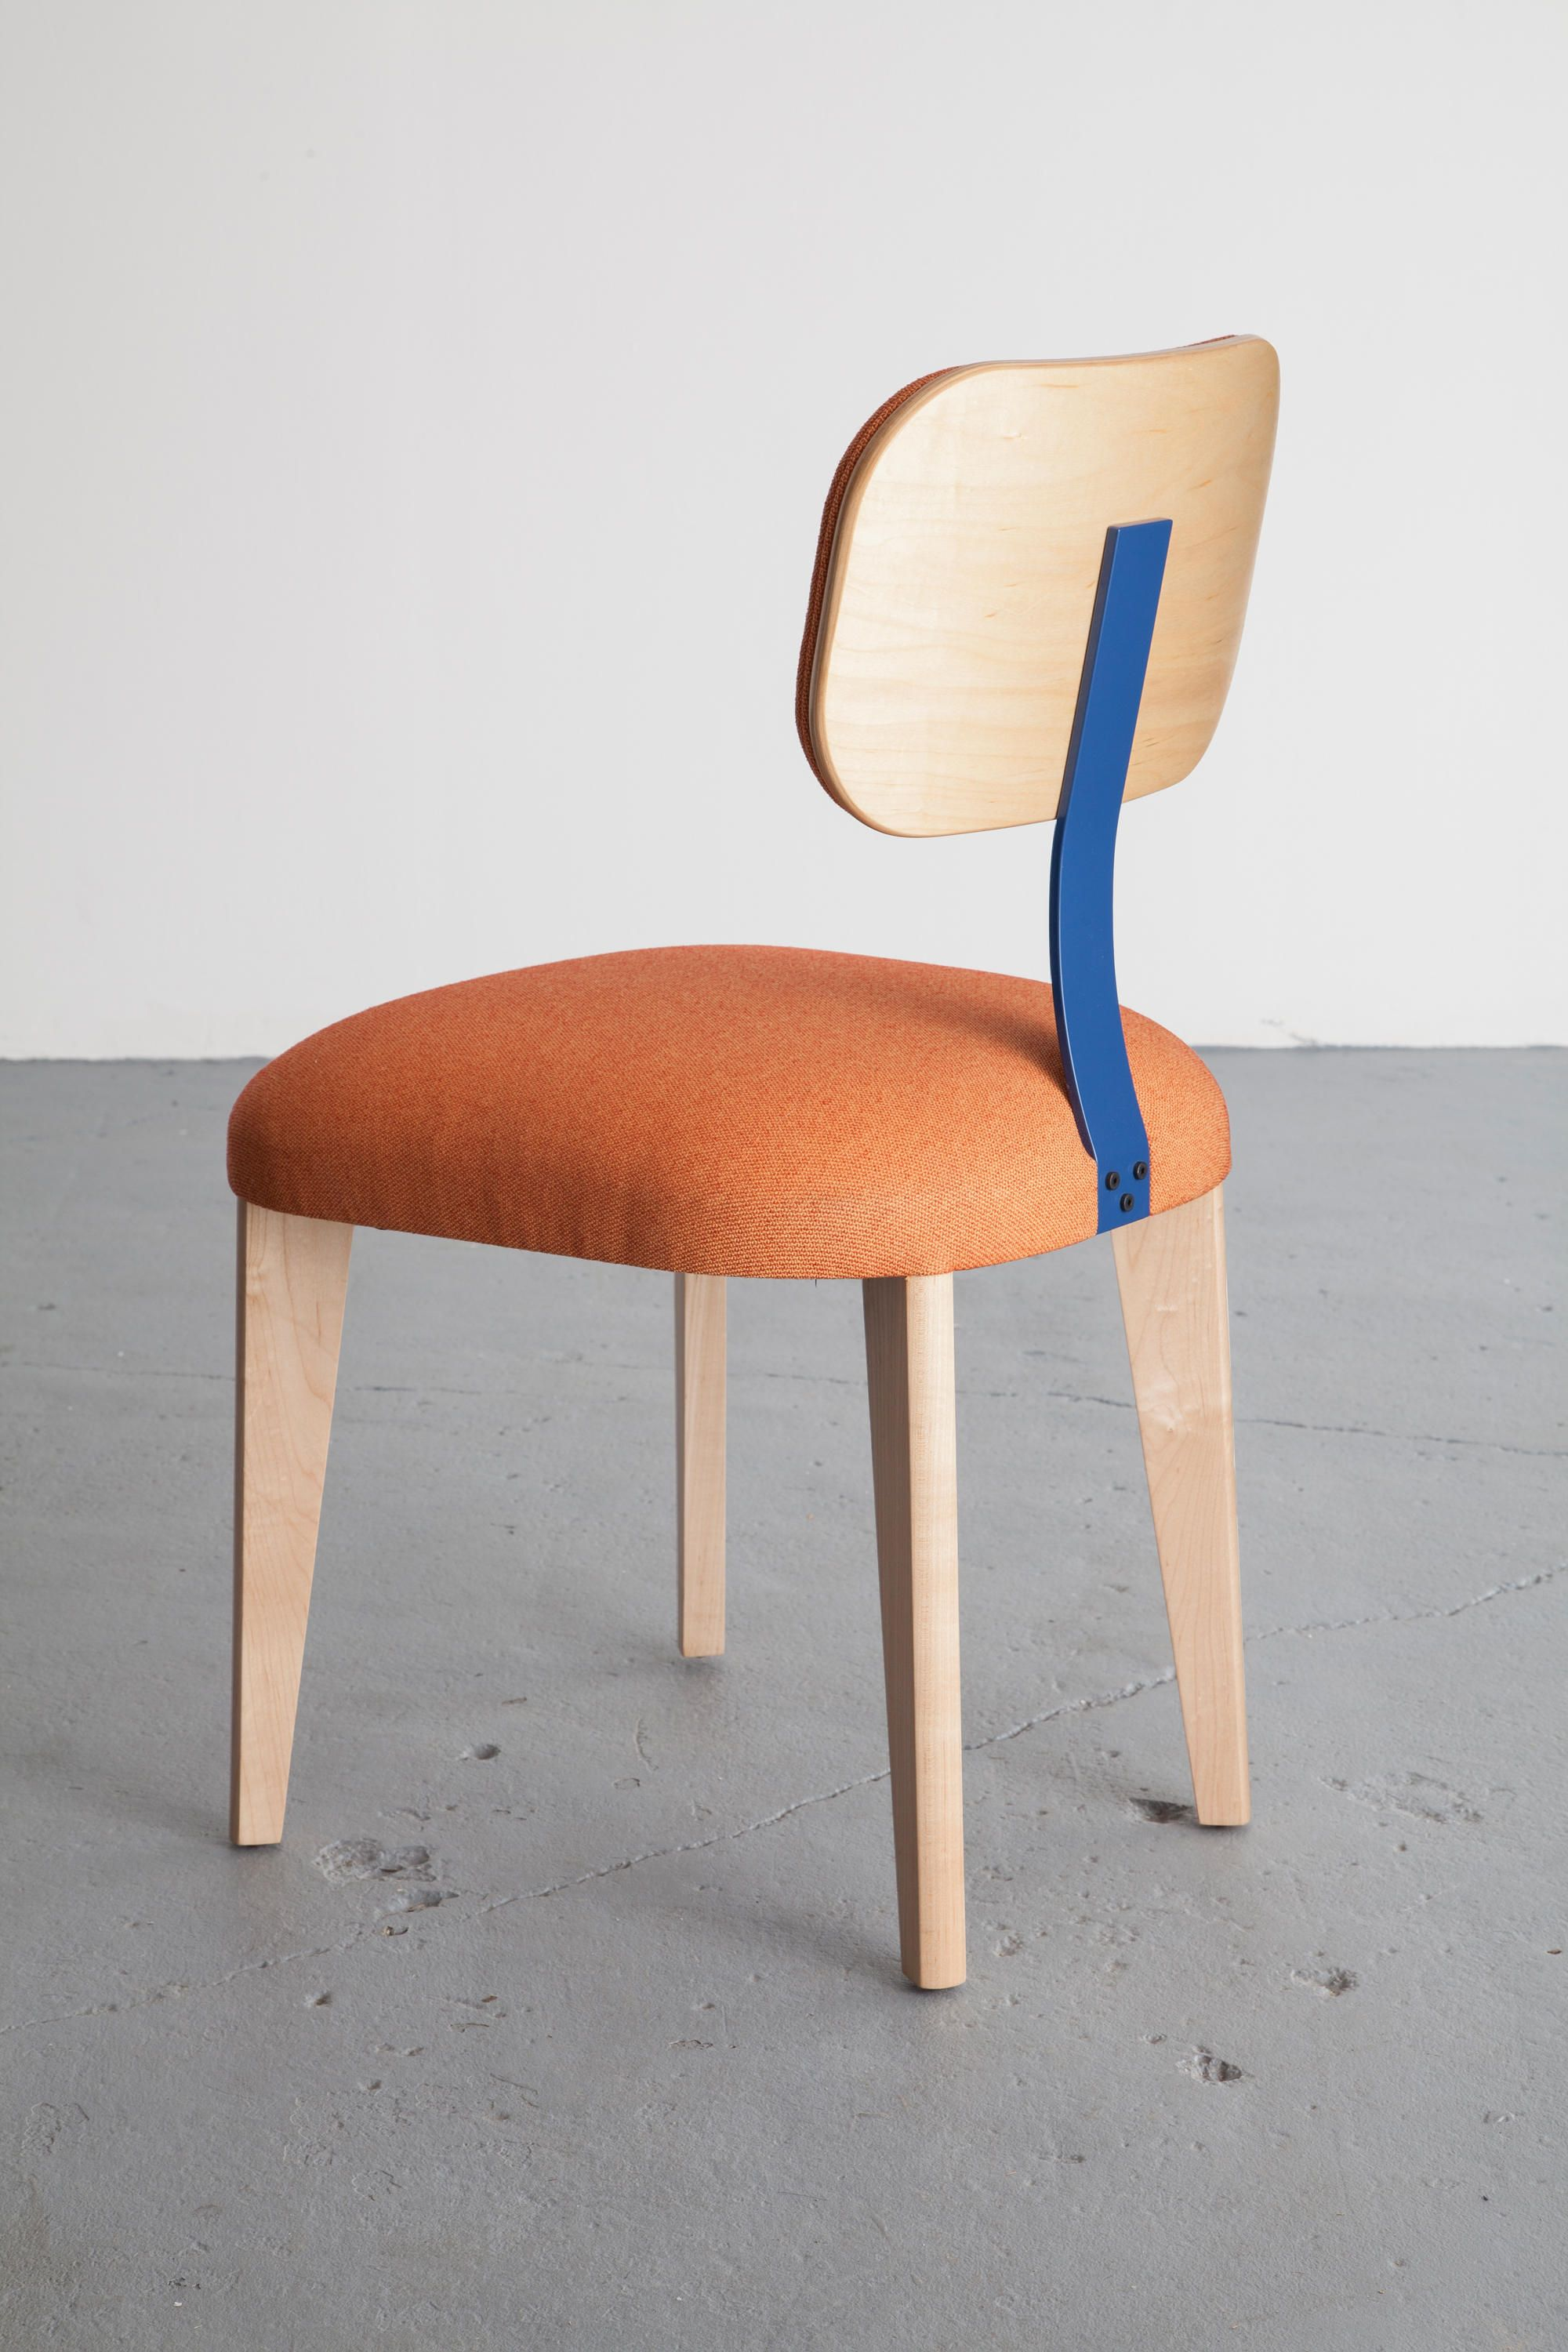 Singer Dining Chair Designer Chairs From David Gaynor Design